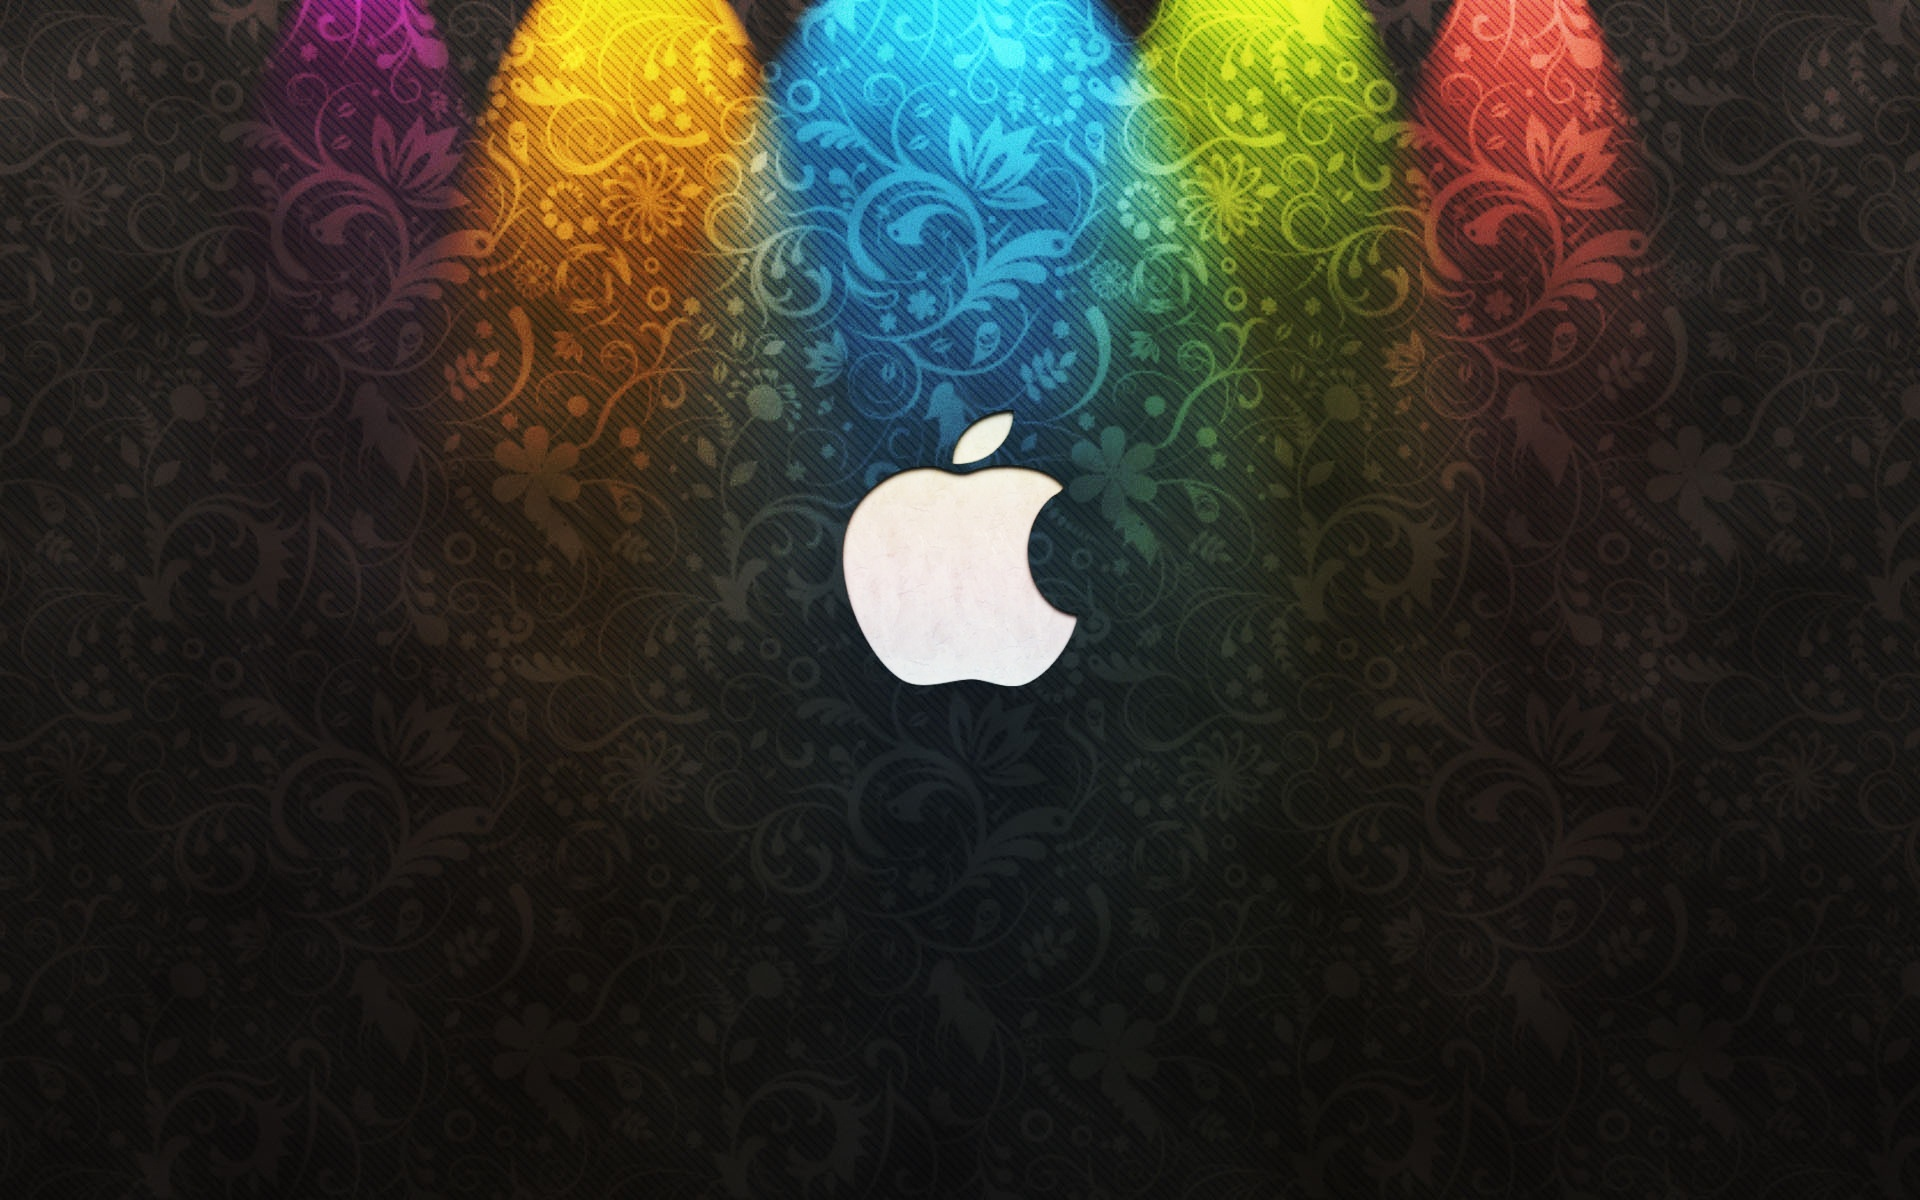 Wallpapers For Apple